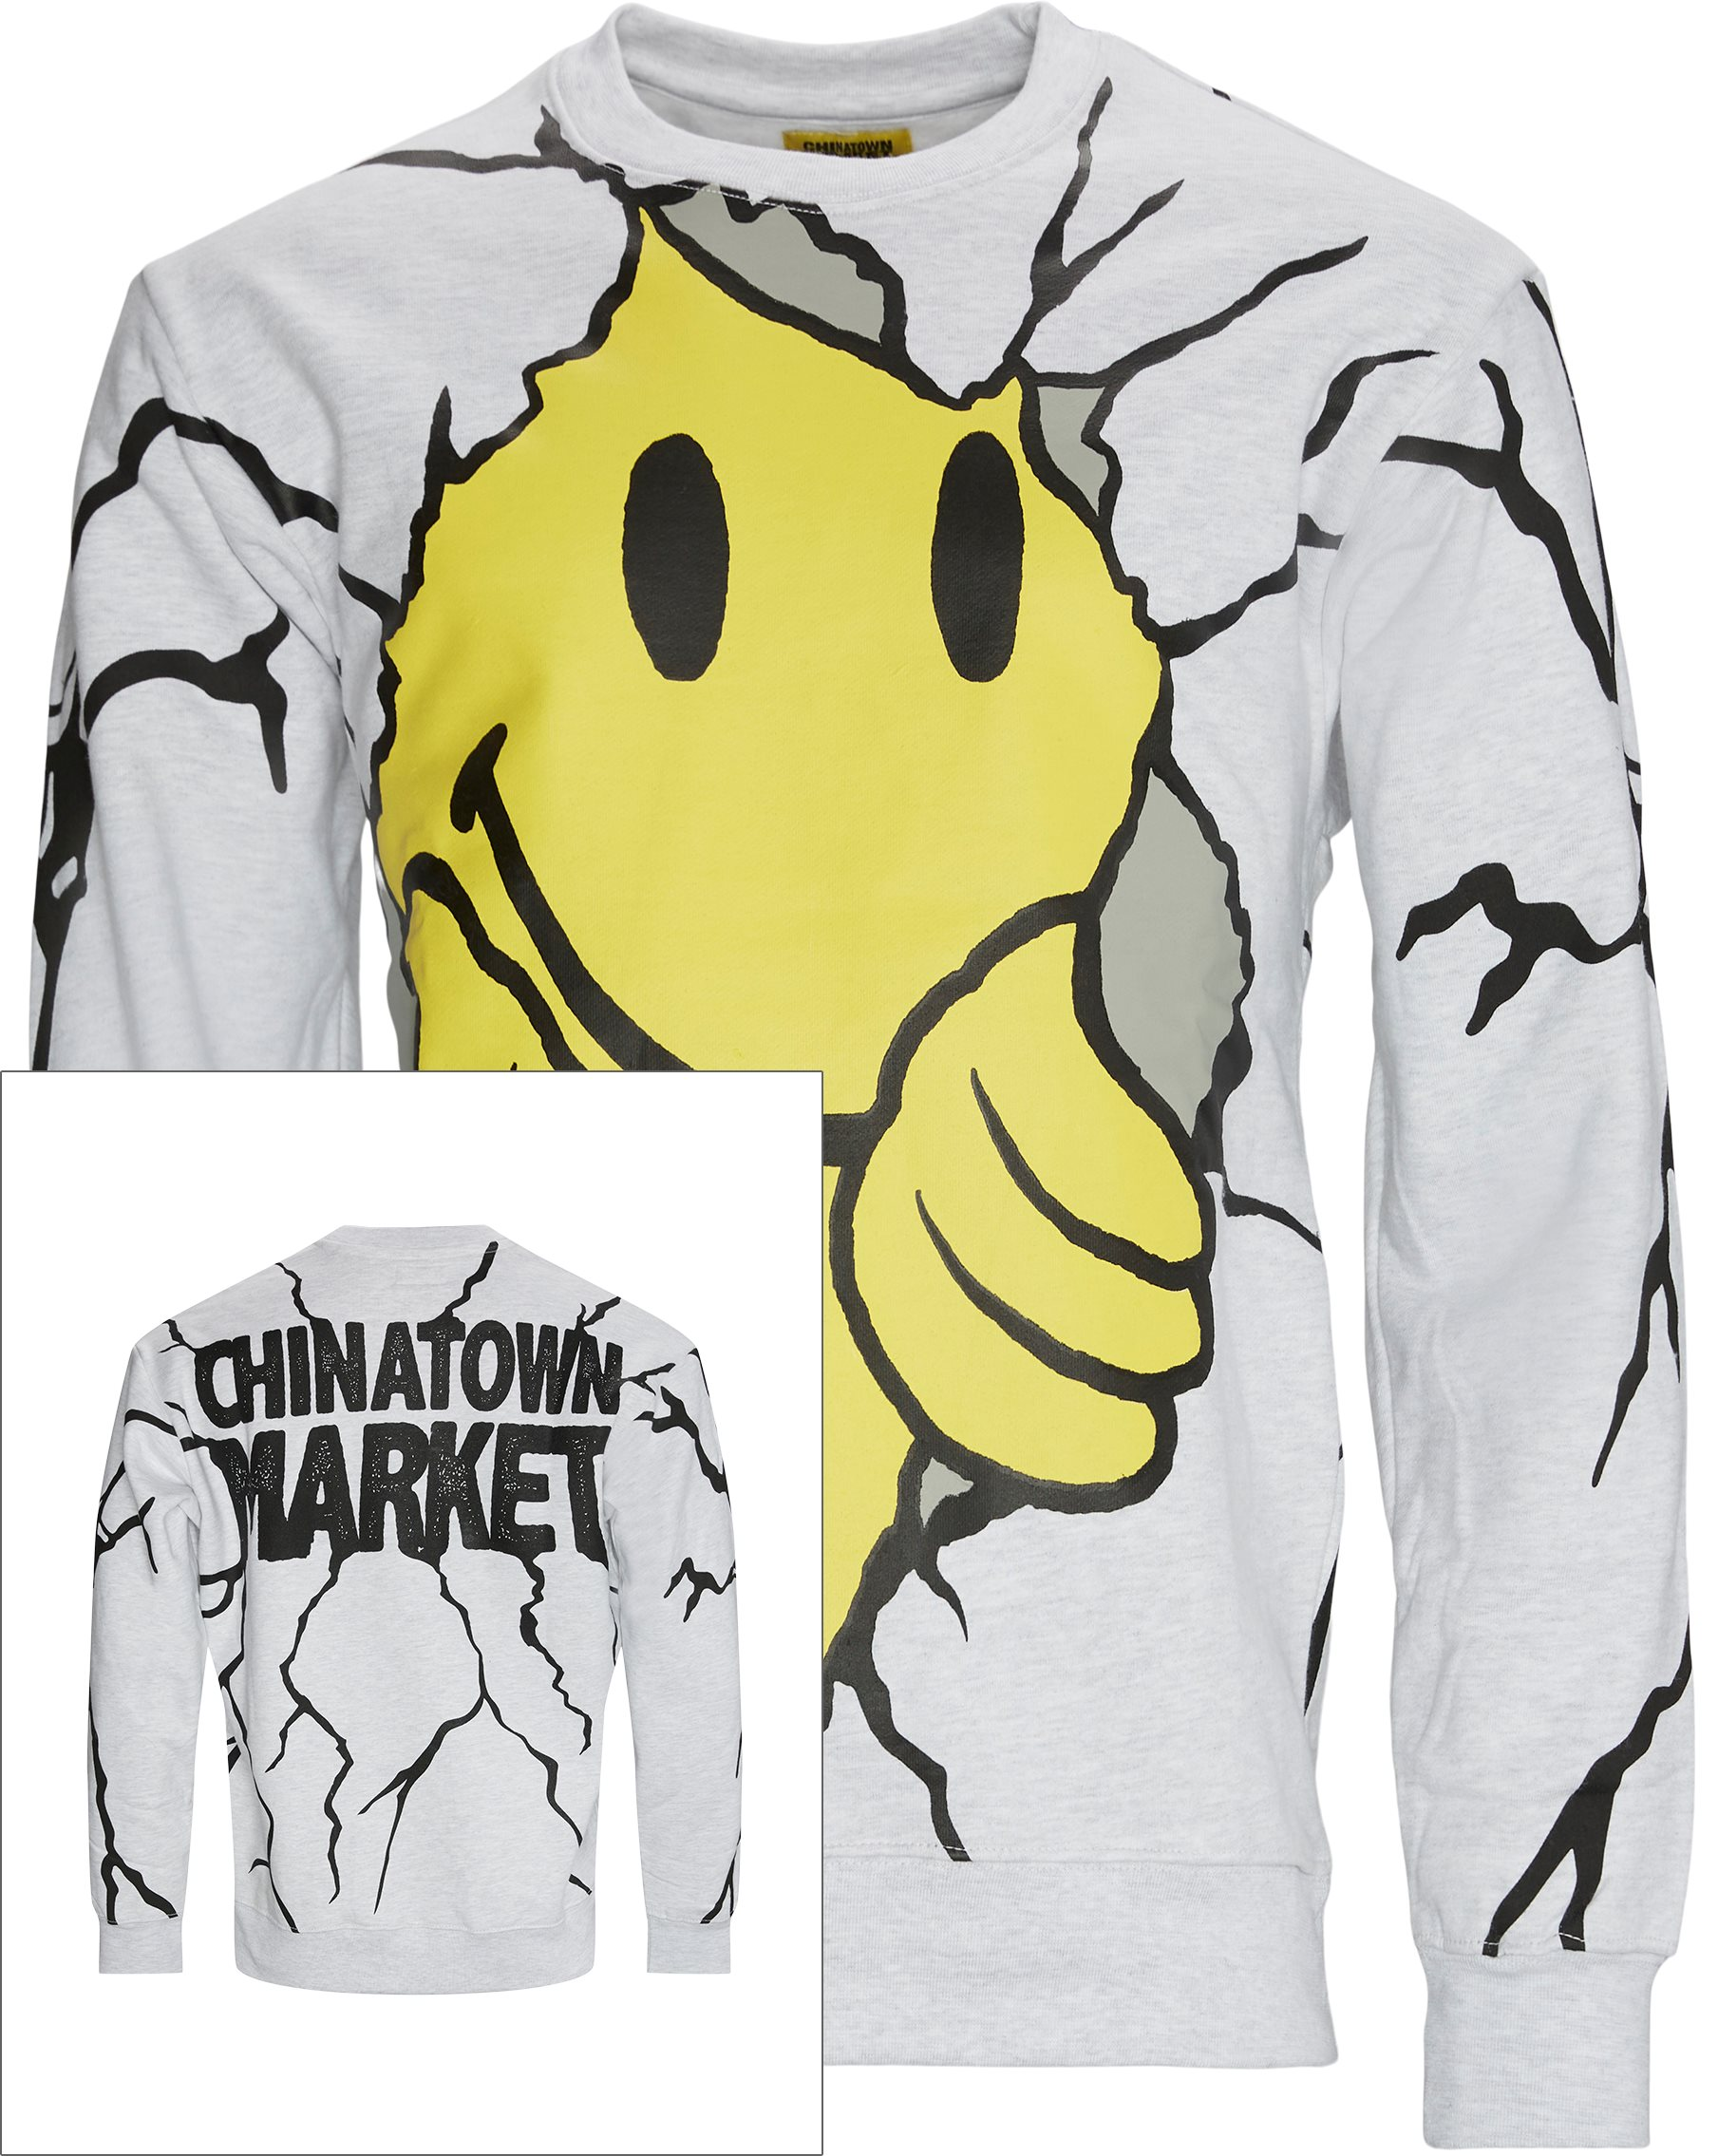 Smiley Dry Wall Breaker Crewneck - Sweatshirts - Regular fit - Grå